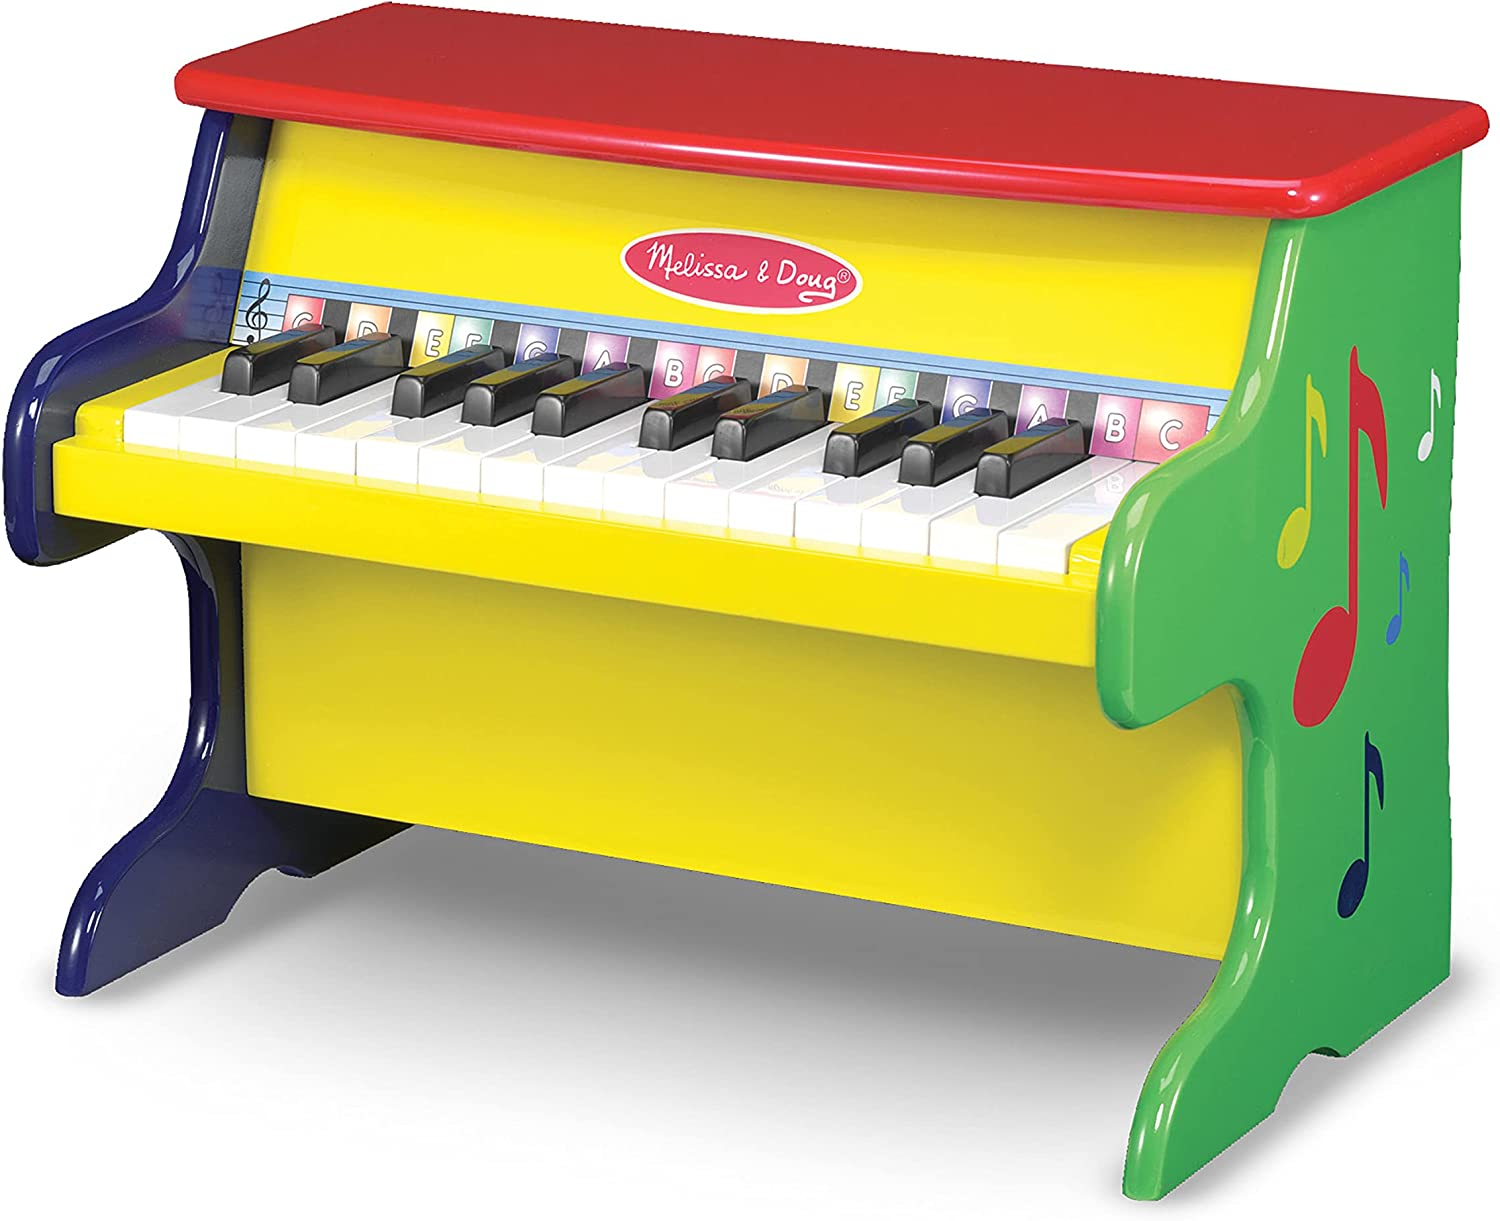 Melissa Doug Learn-To-Play Piano With Keys Color-Coded 25 Max Super sale 89% OFF and